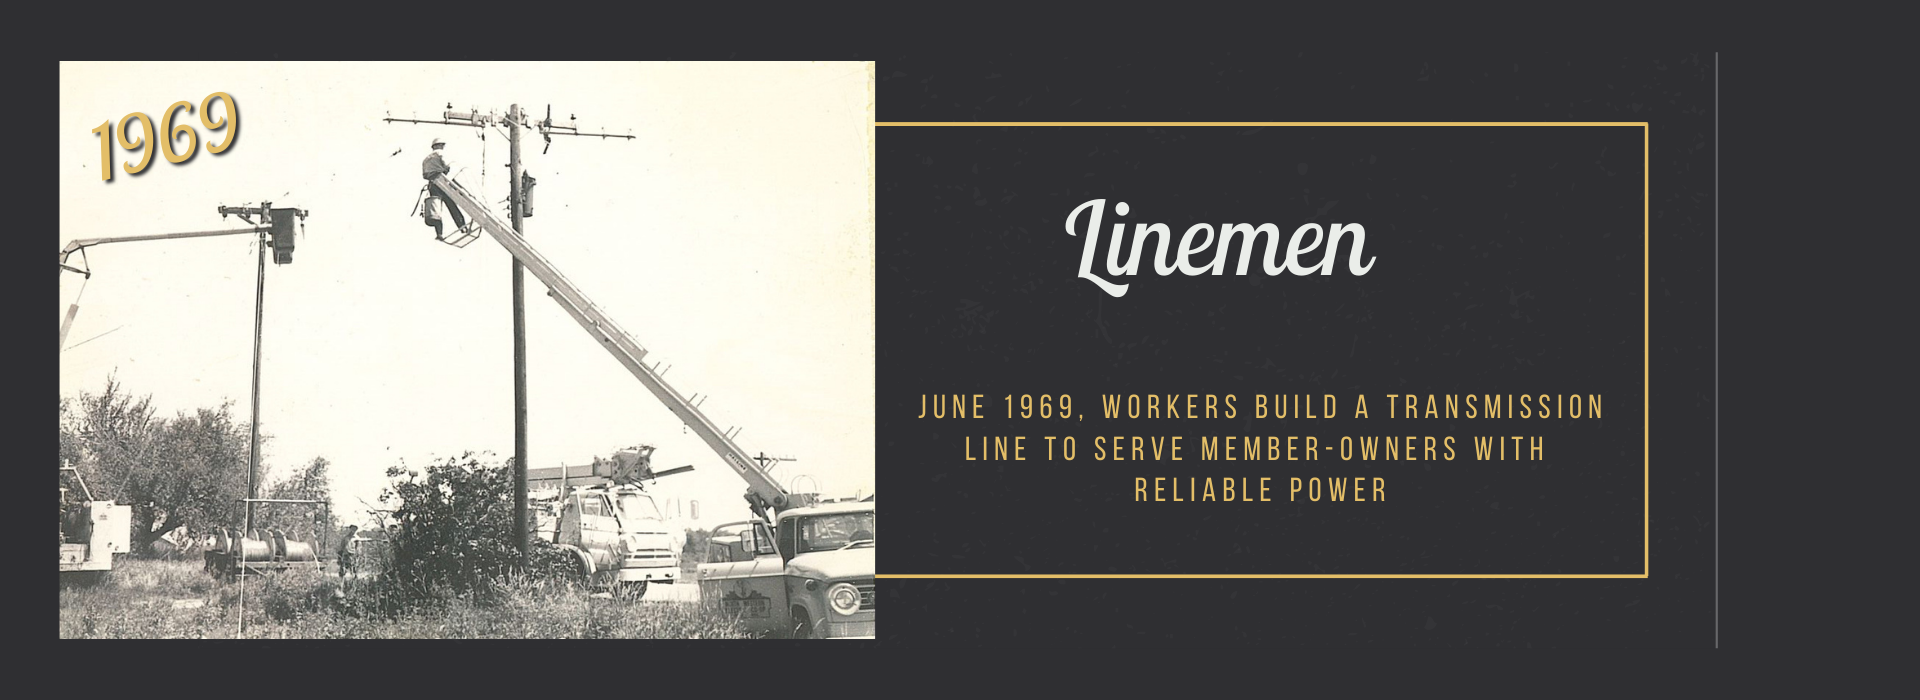 June 1969, workers build a transmission line to serve member-owners with  reliable power